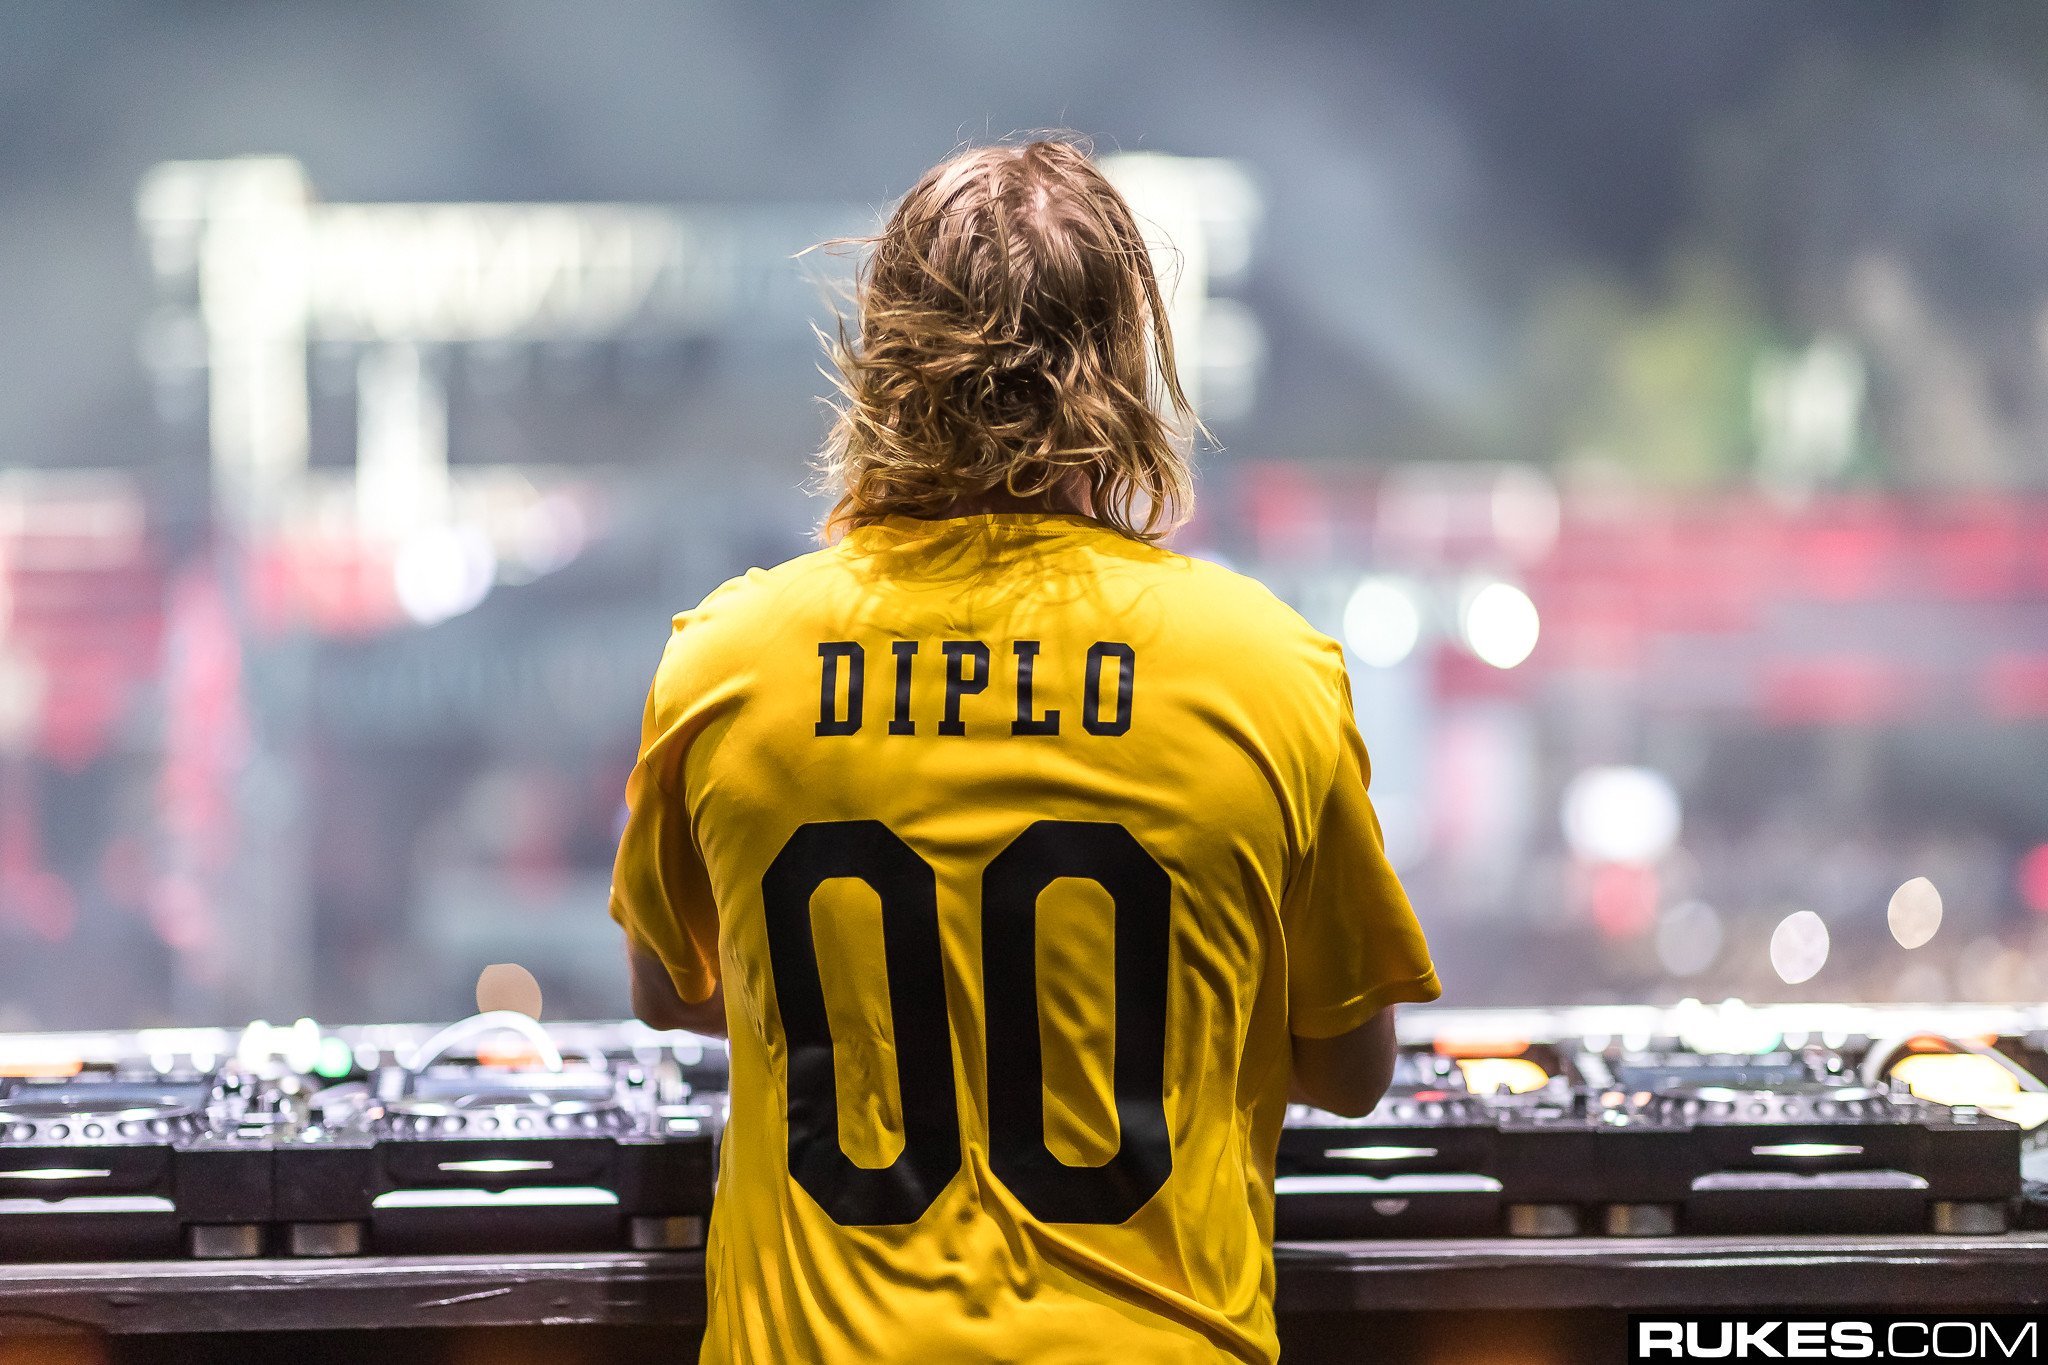 Diplo Unleashes First 'Diplo & Friends' Mix of 2019 & It's